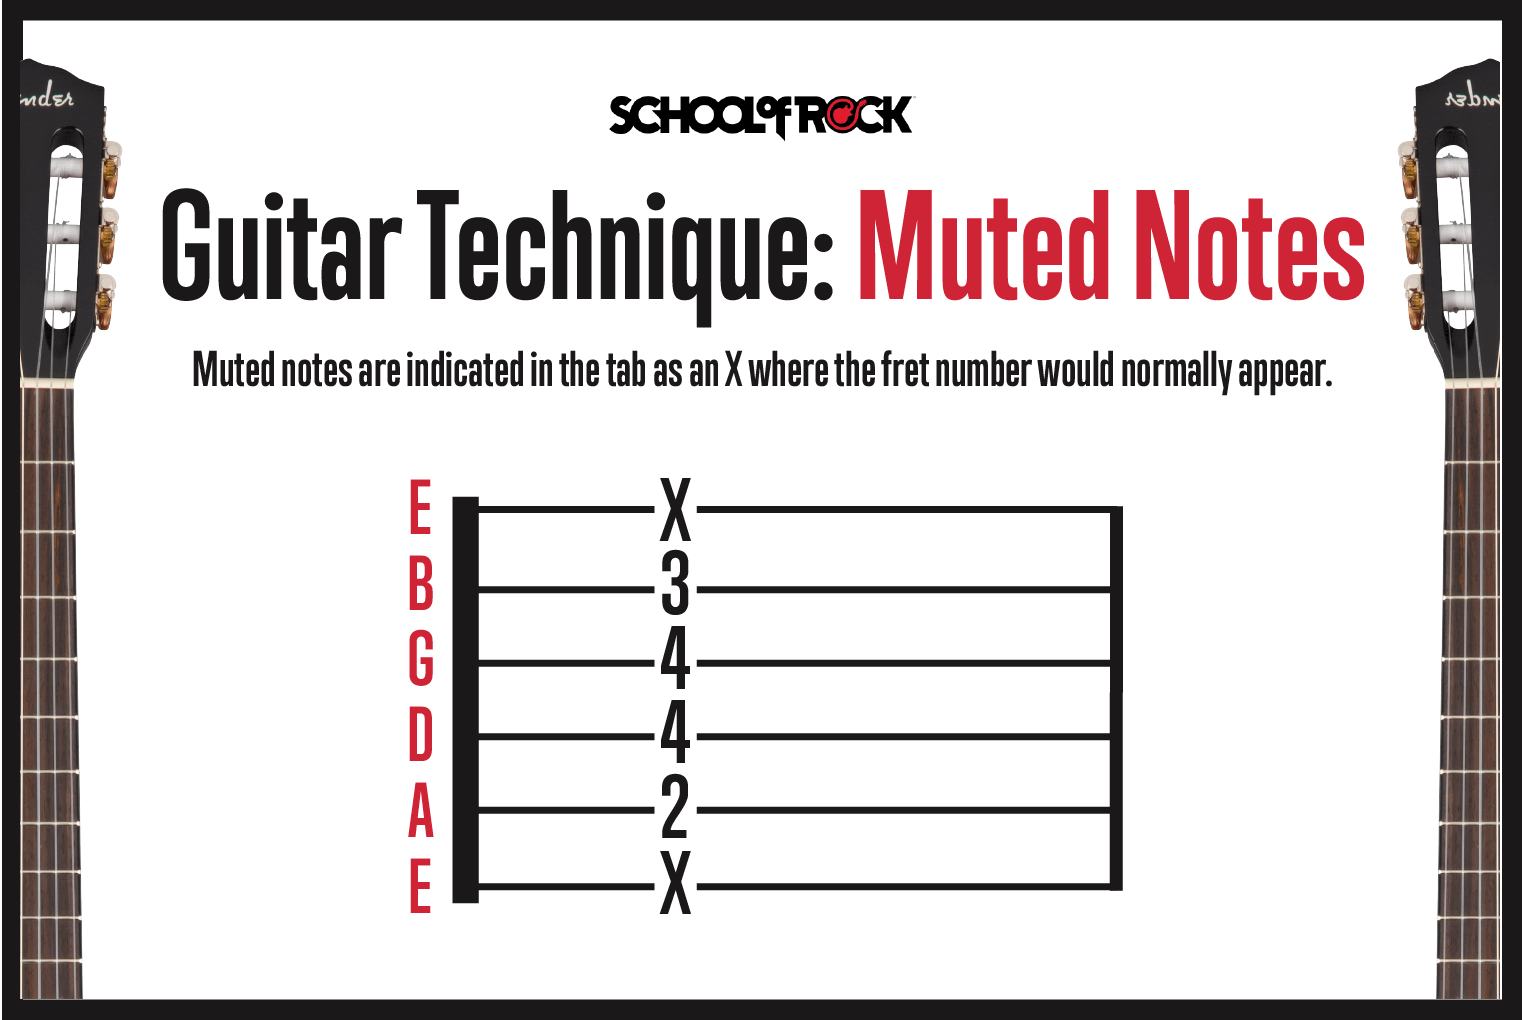 Guitar technique muted notes